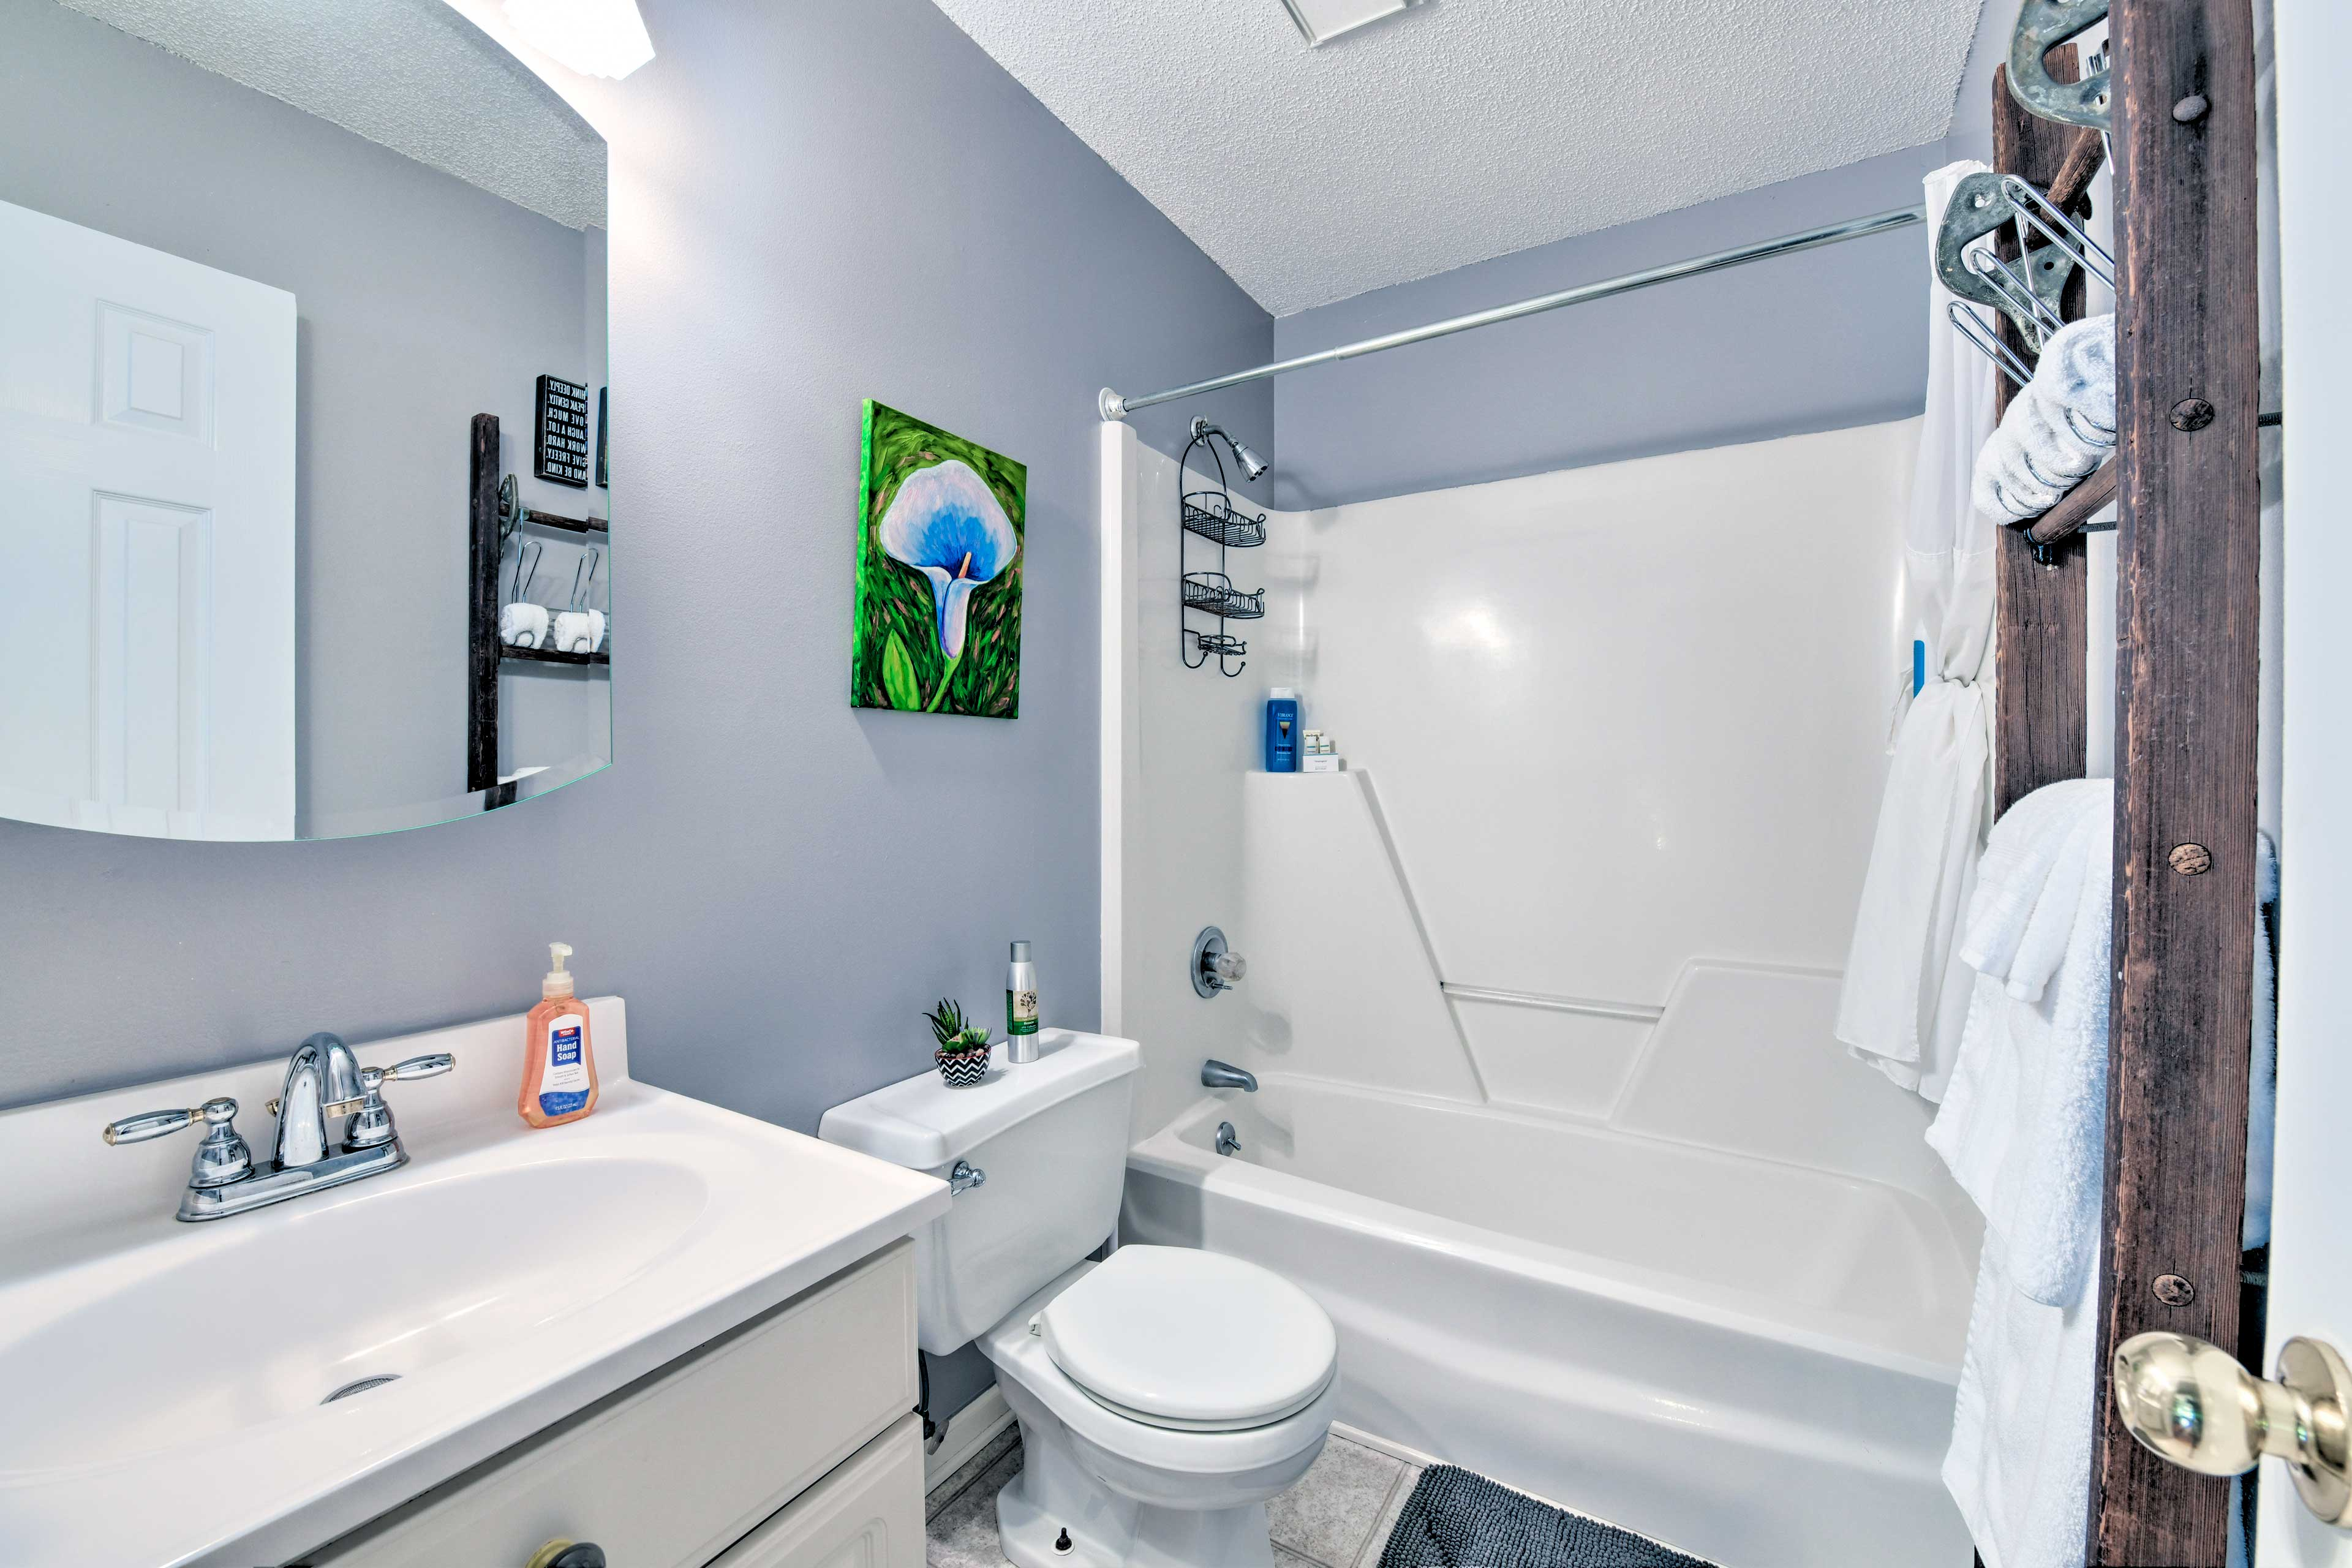 Fresh towels and linens are provided during your stay.